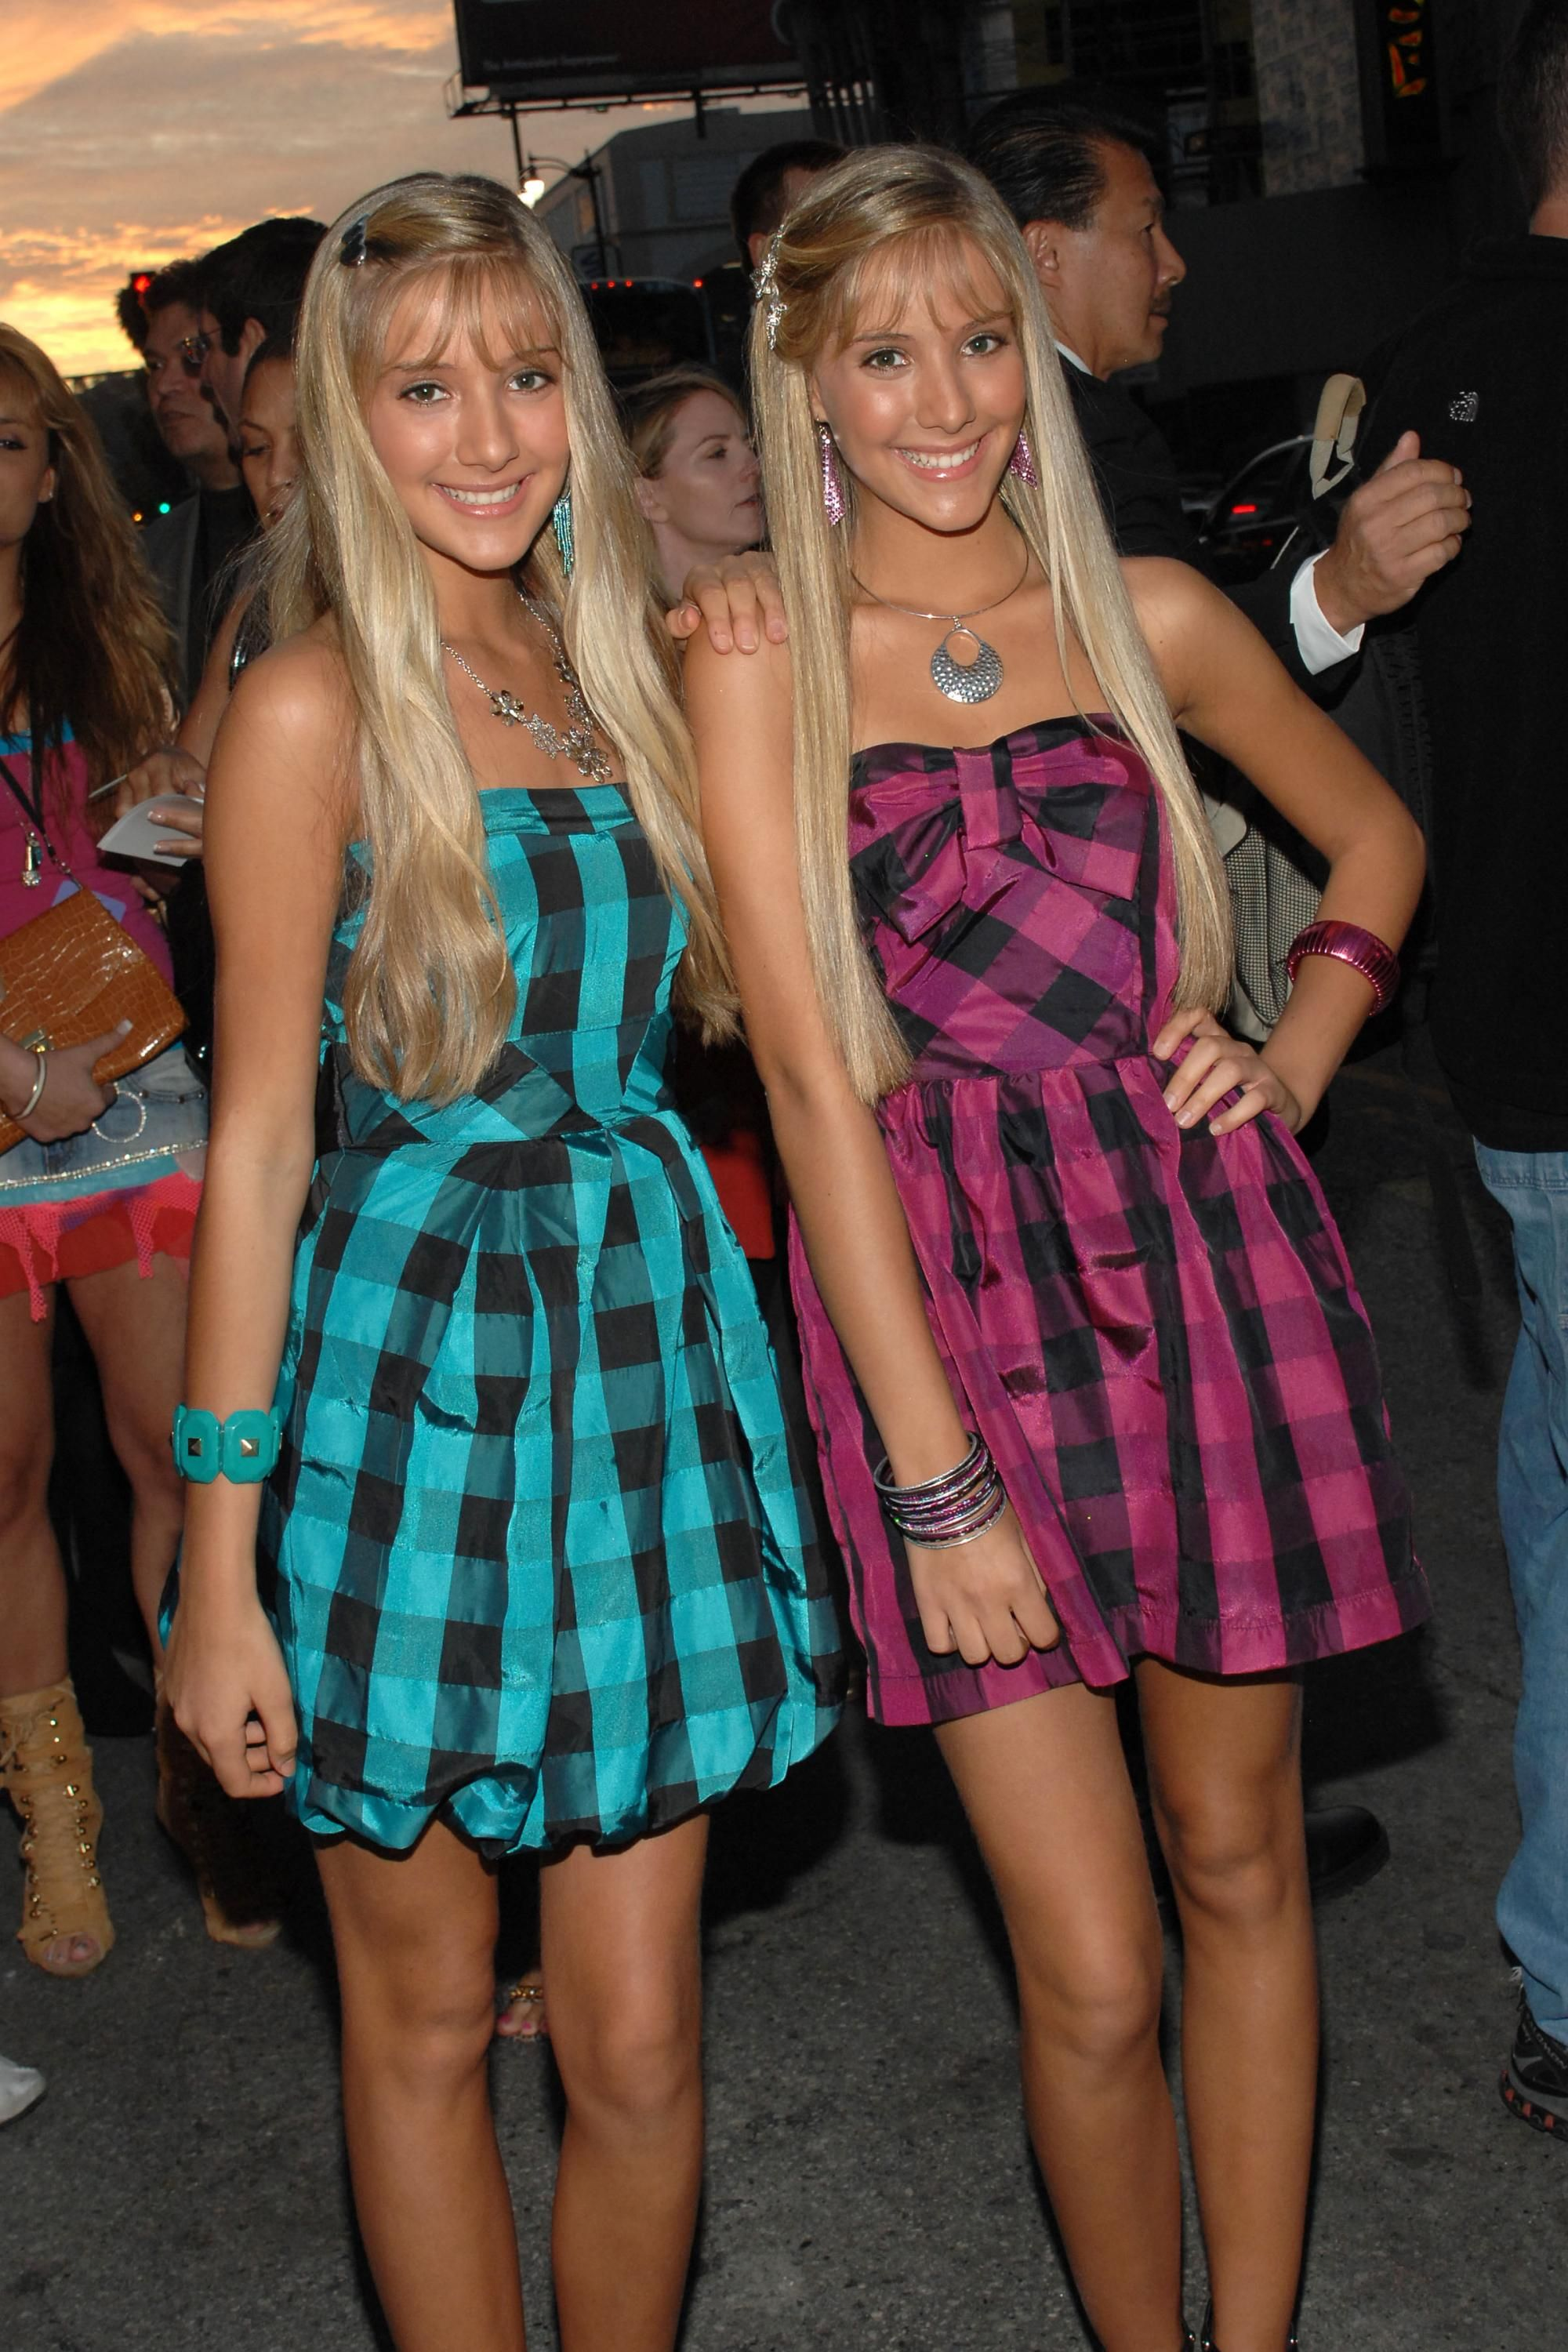 Camilla and Rebecca Rosso nudes (56 pics) Feet, Facebook, see through